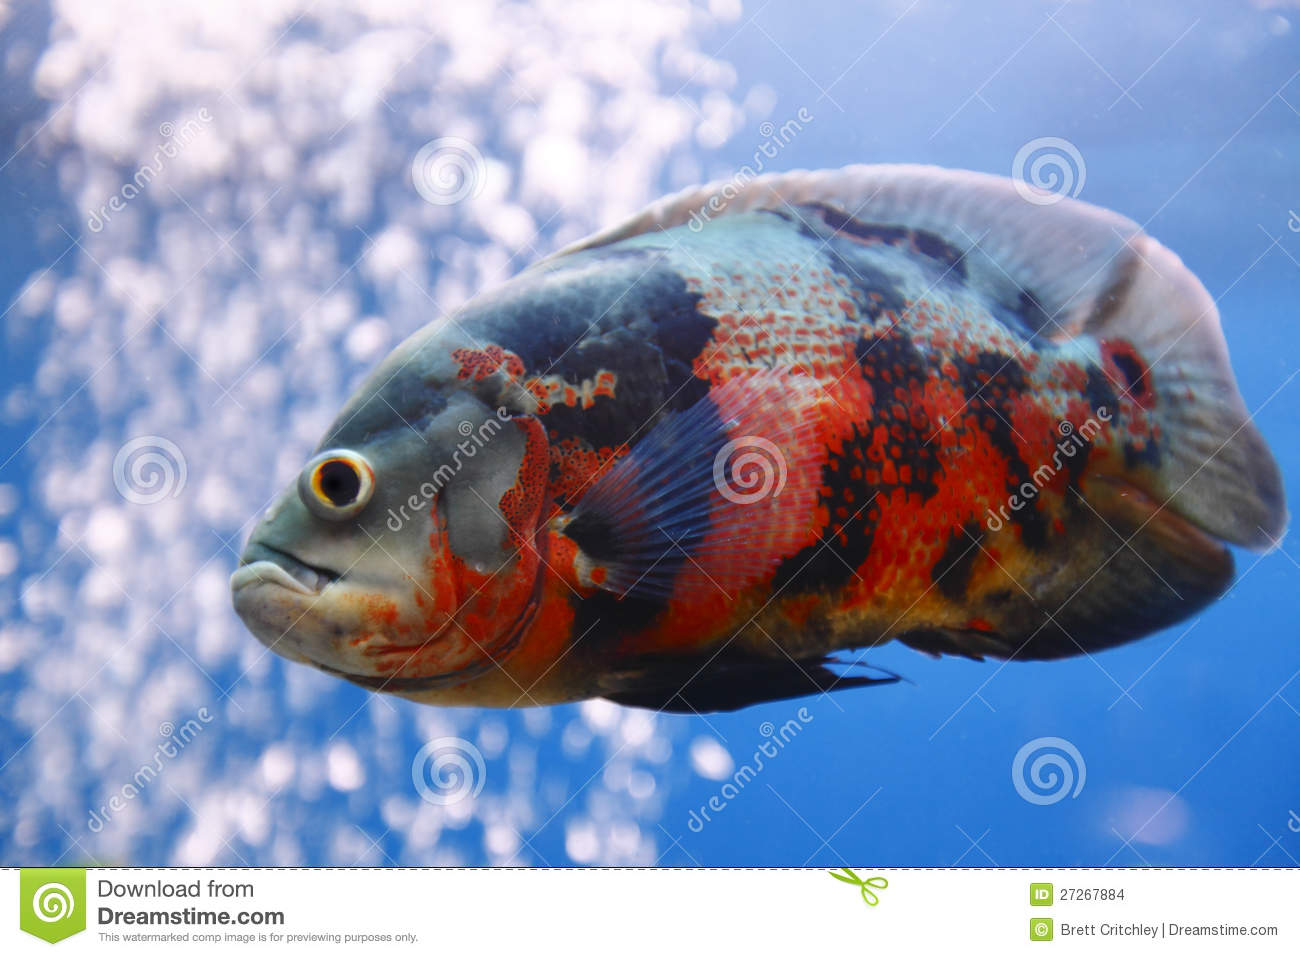 Oscar (Fish) clipart #14, Download drawings